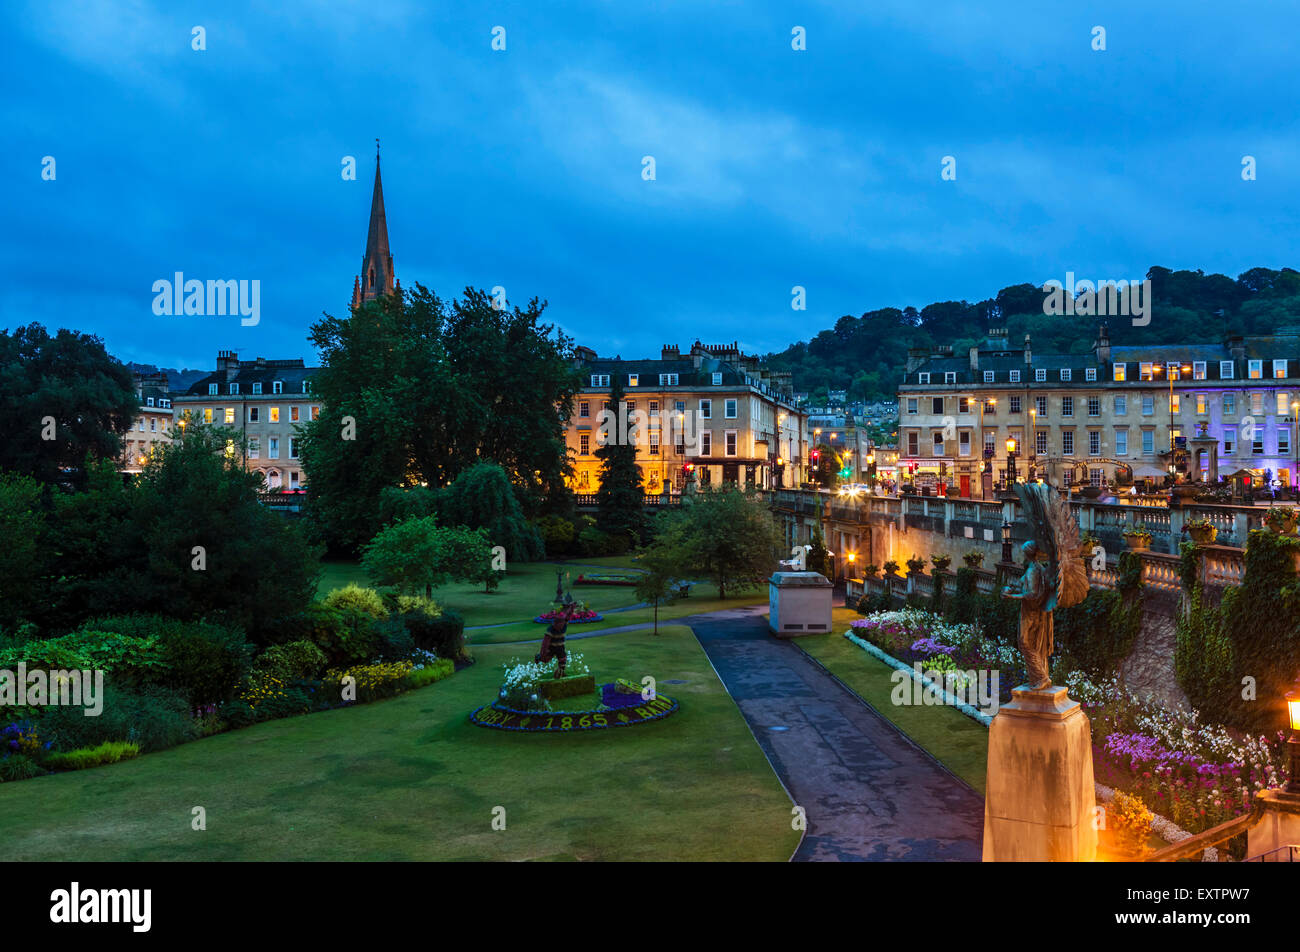 Night shot of Parade Gardens in the historic old city centre, Bath, Somerset, England, UK - Stock Image